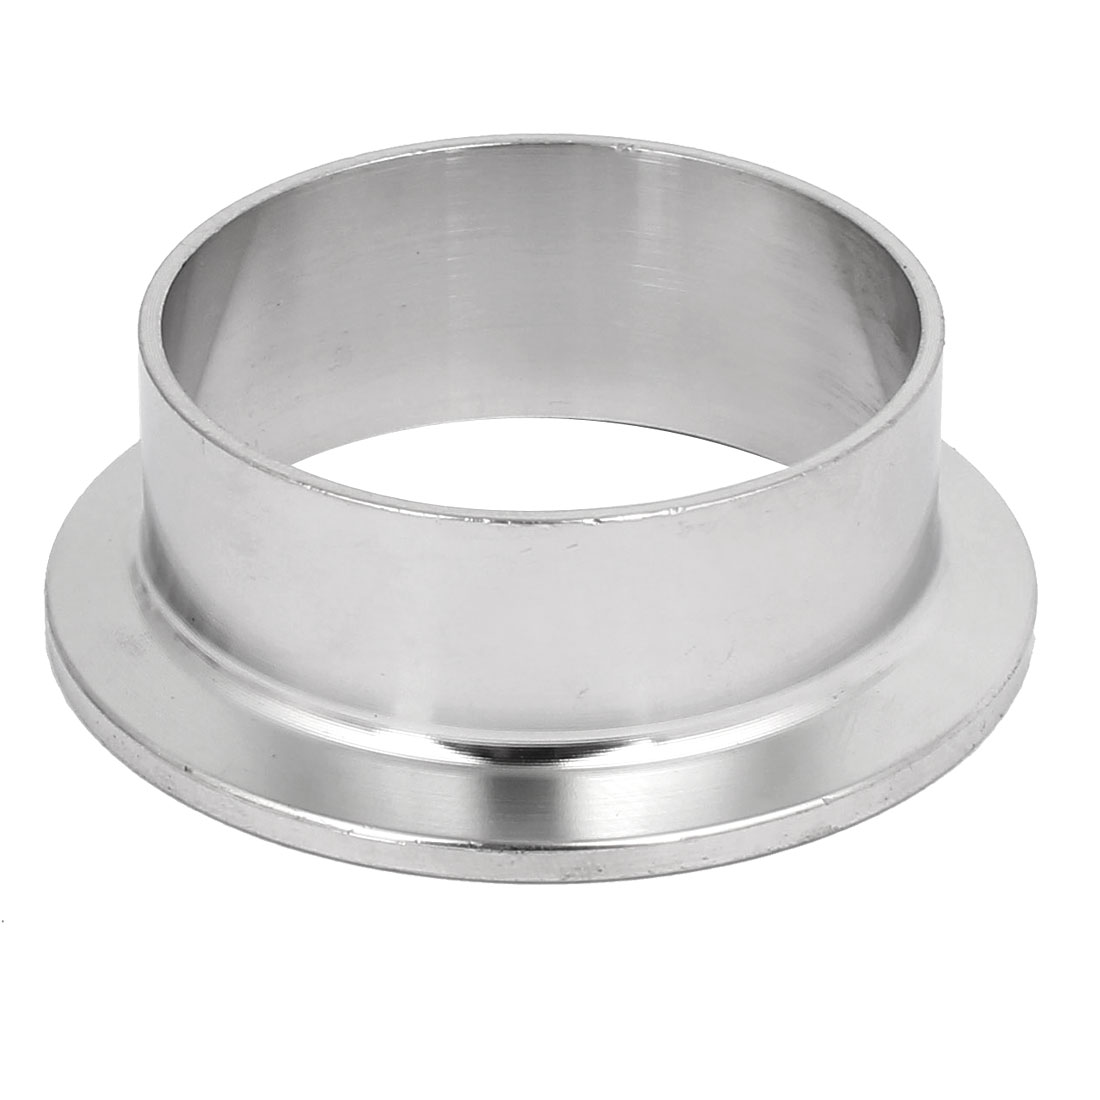 304 Stainless Steel 51mm OD Sanitary Pipe Weld on Ferrule Fits 2 Tri Clamp free shipping 2 51mm sanitary tri clamp 3 way tee stainless steel 304 sanitary ferrule tee connector pipe fitting tri clamp